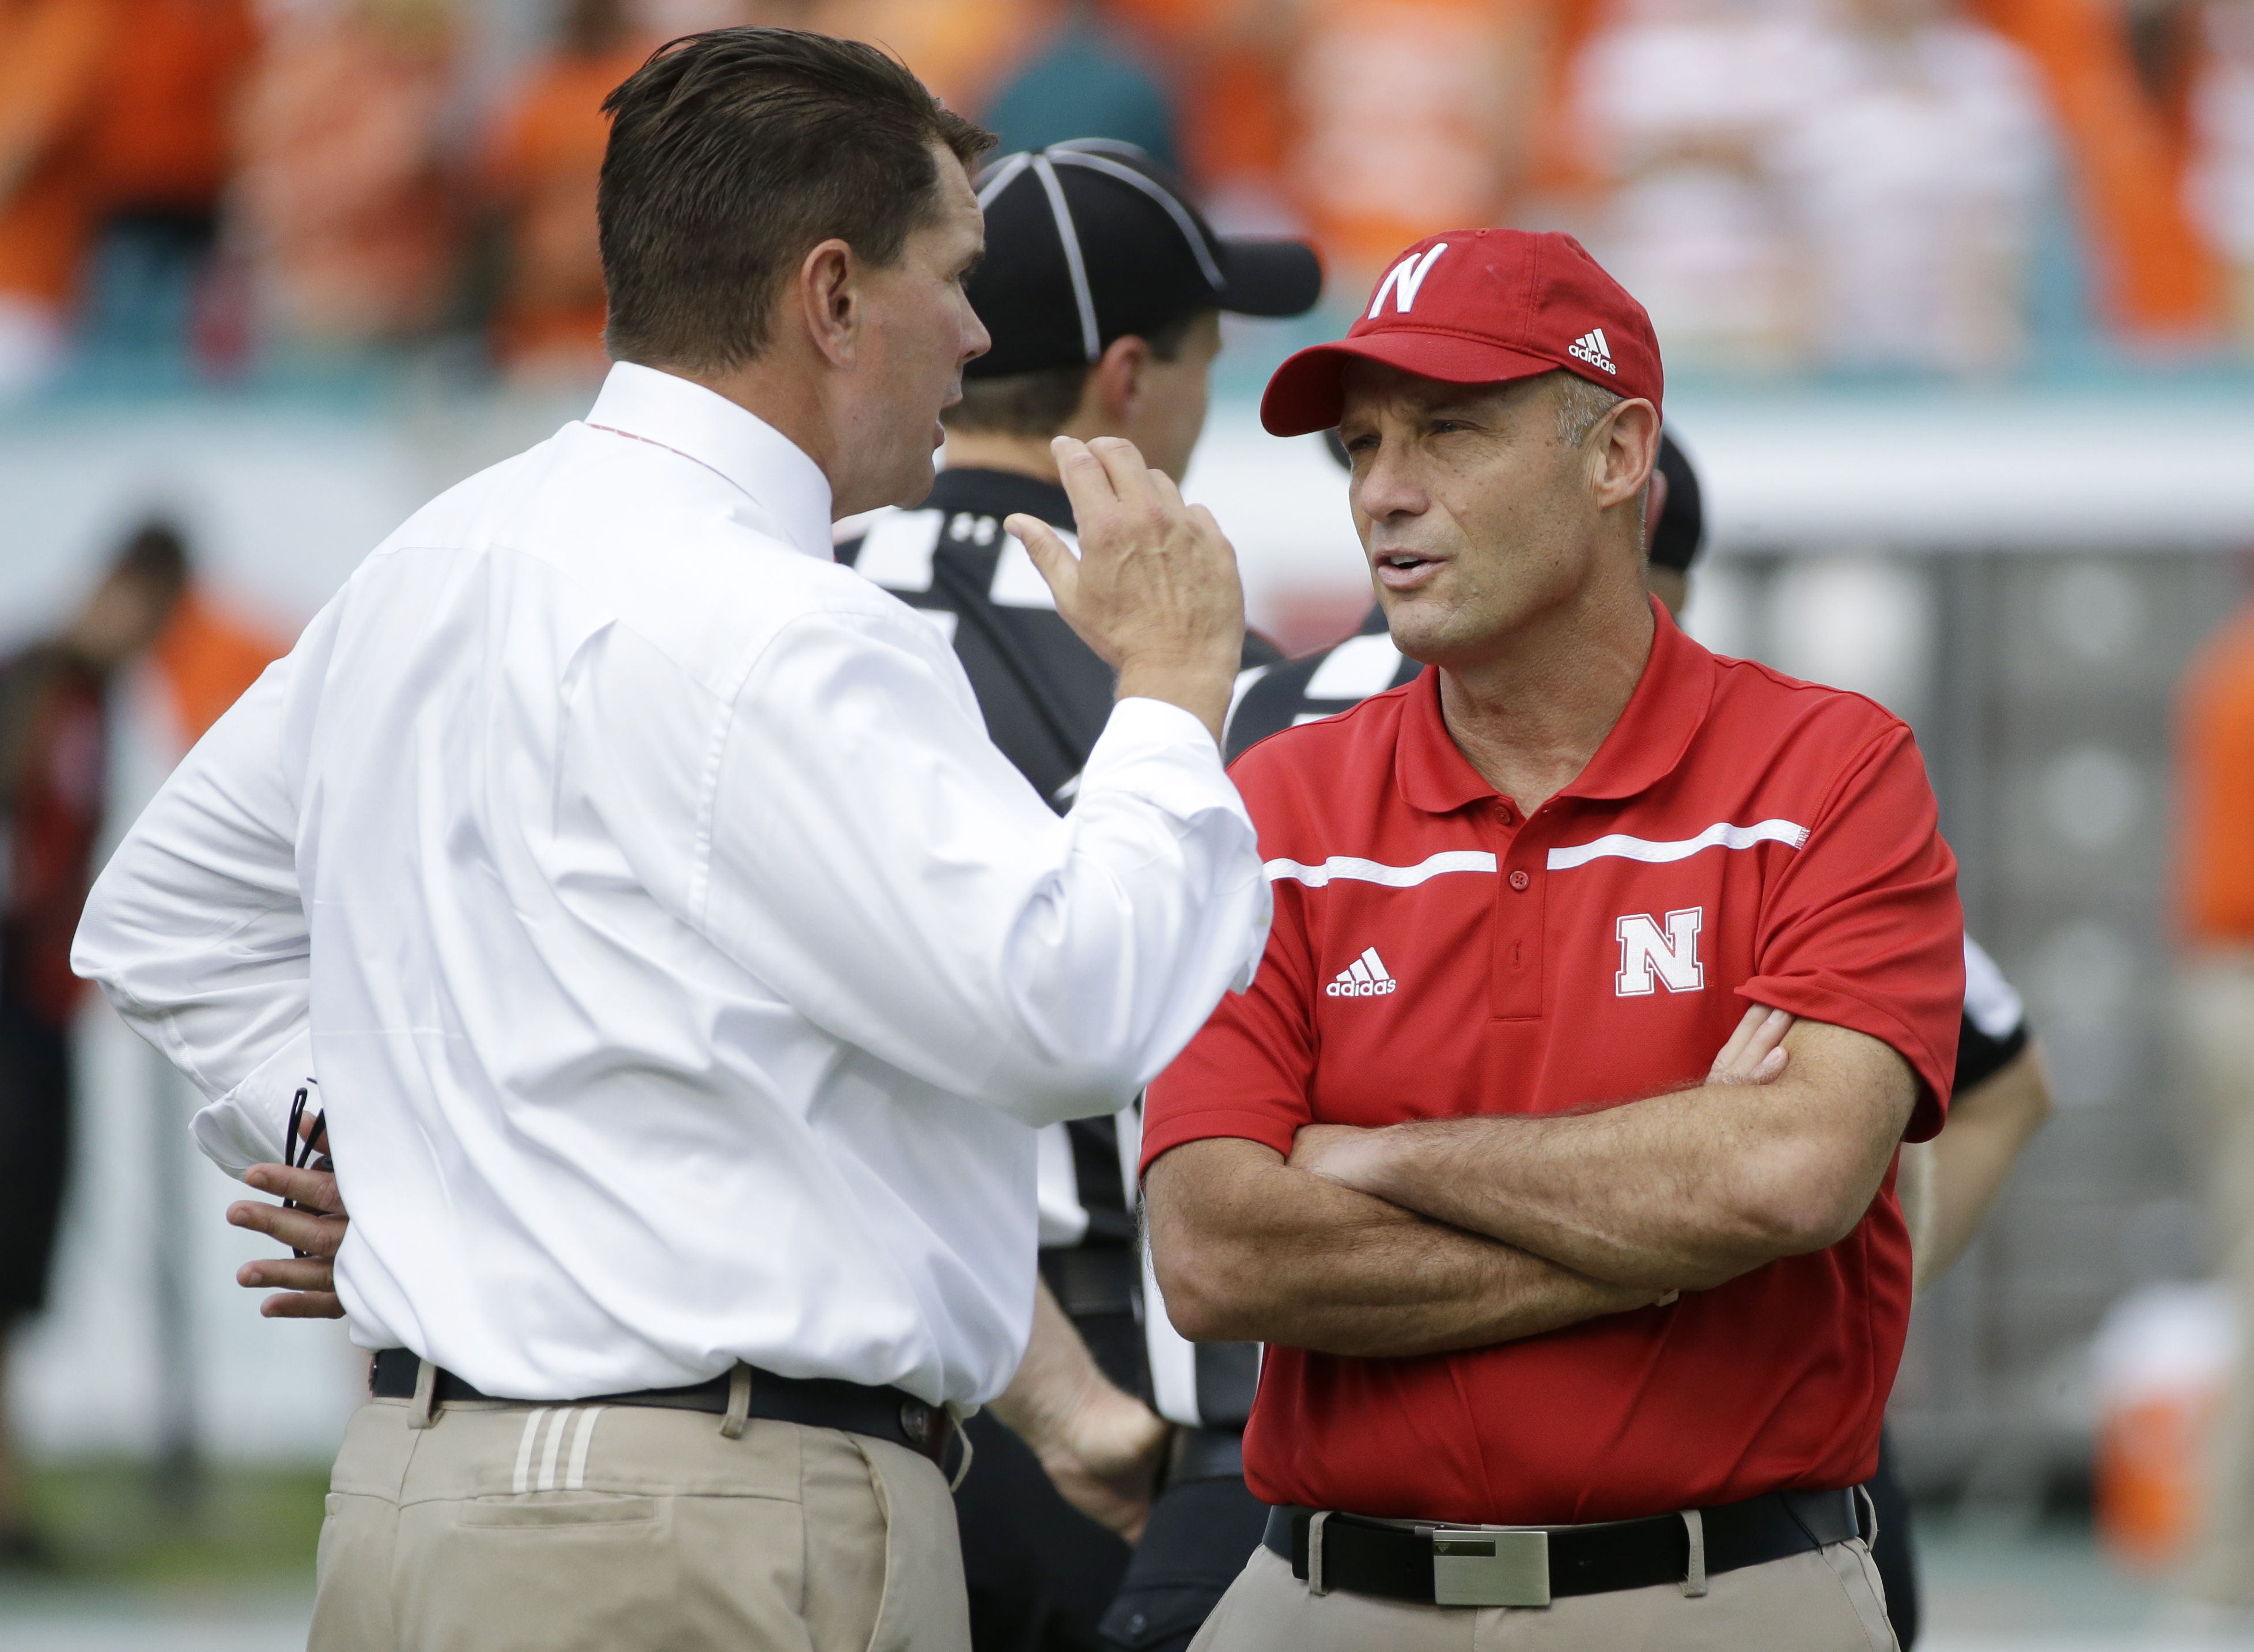 Miami head coach Al Golden, left, and Nebraska head coach Mike Riley talk before the start of an NCAA college football game, Saturday, Sept. 19, 2015 in Miami Gardens, Fla. (AP Photo/Wilfredo Lee)